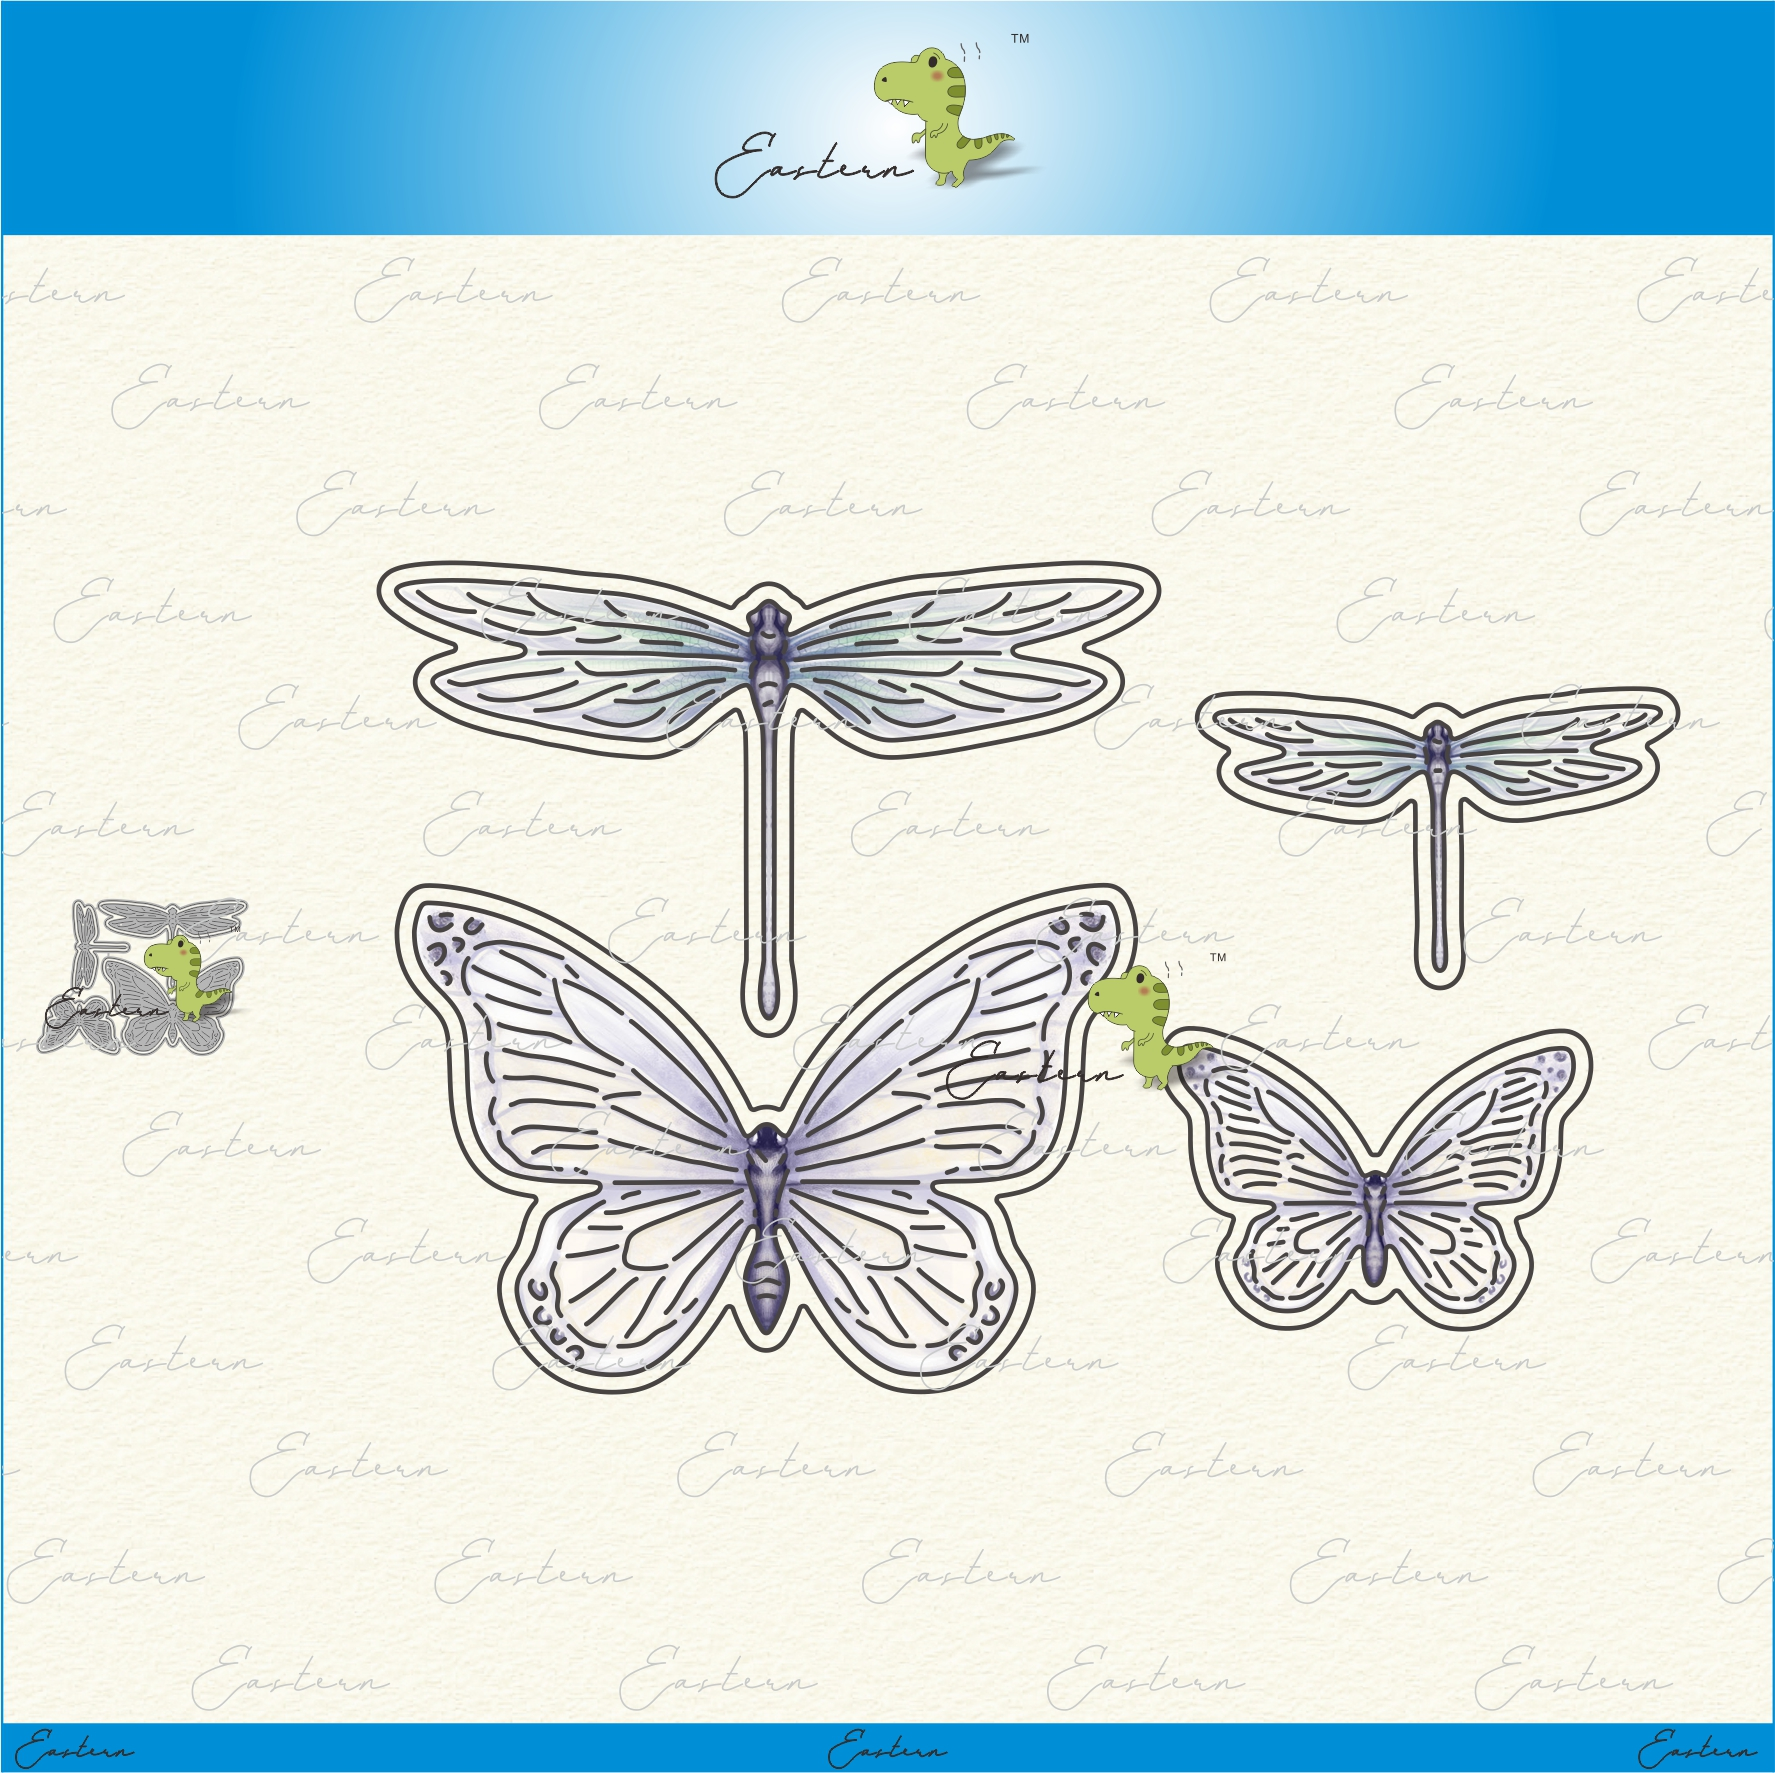 dragonfly and butterfly metal cutting dies 2020 new diy mould Scrapbooking Paper Making die cuts crafts dies molds craft die cut